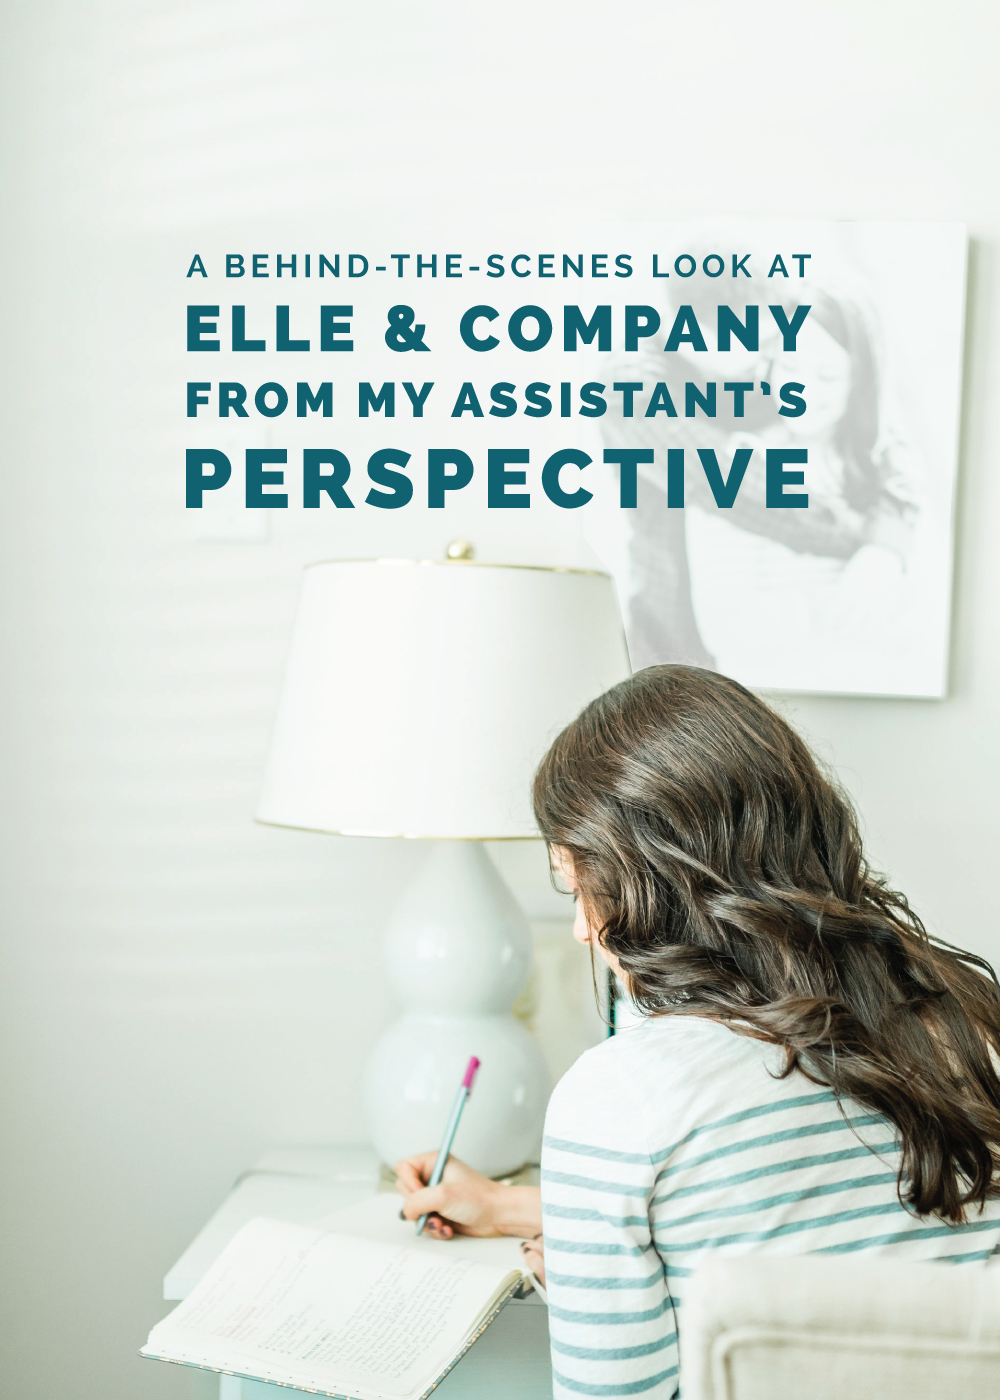 A Behind-the-Scene Look at Elle & Company From My Assistant's Perspective | Elle & Company